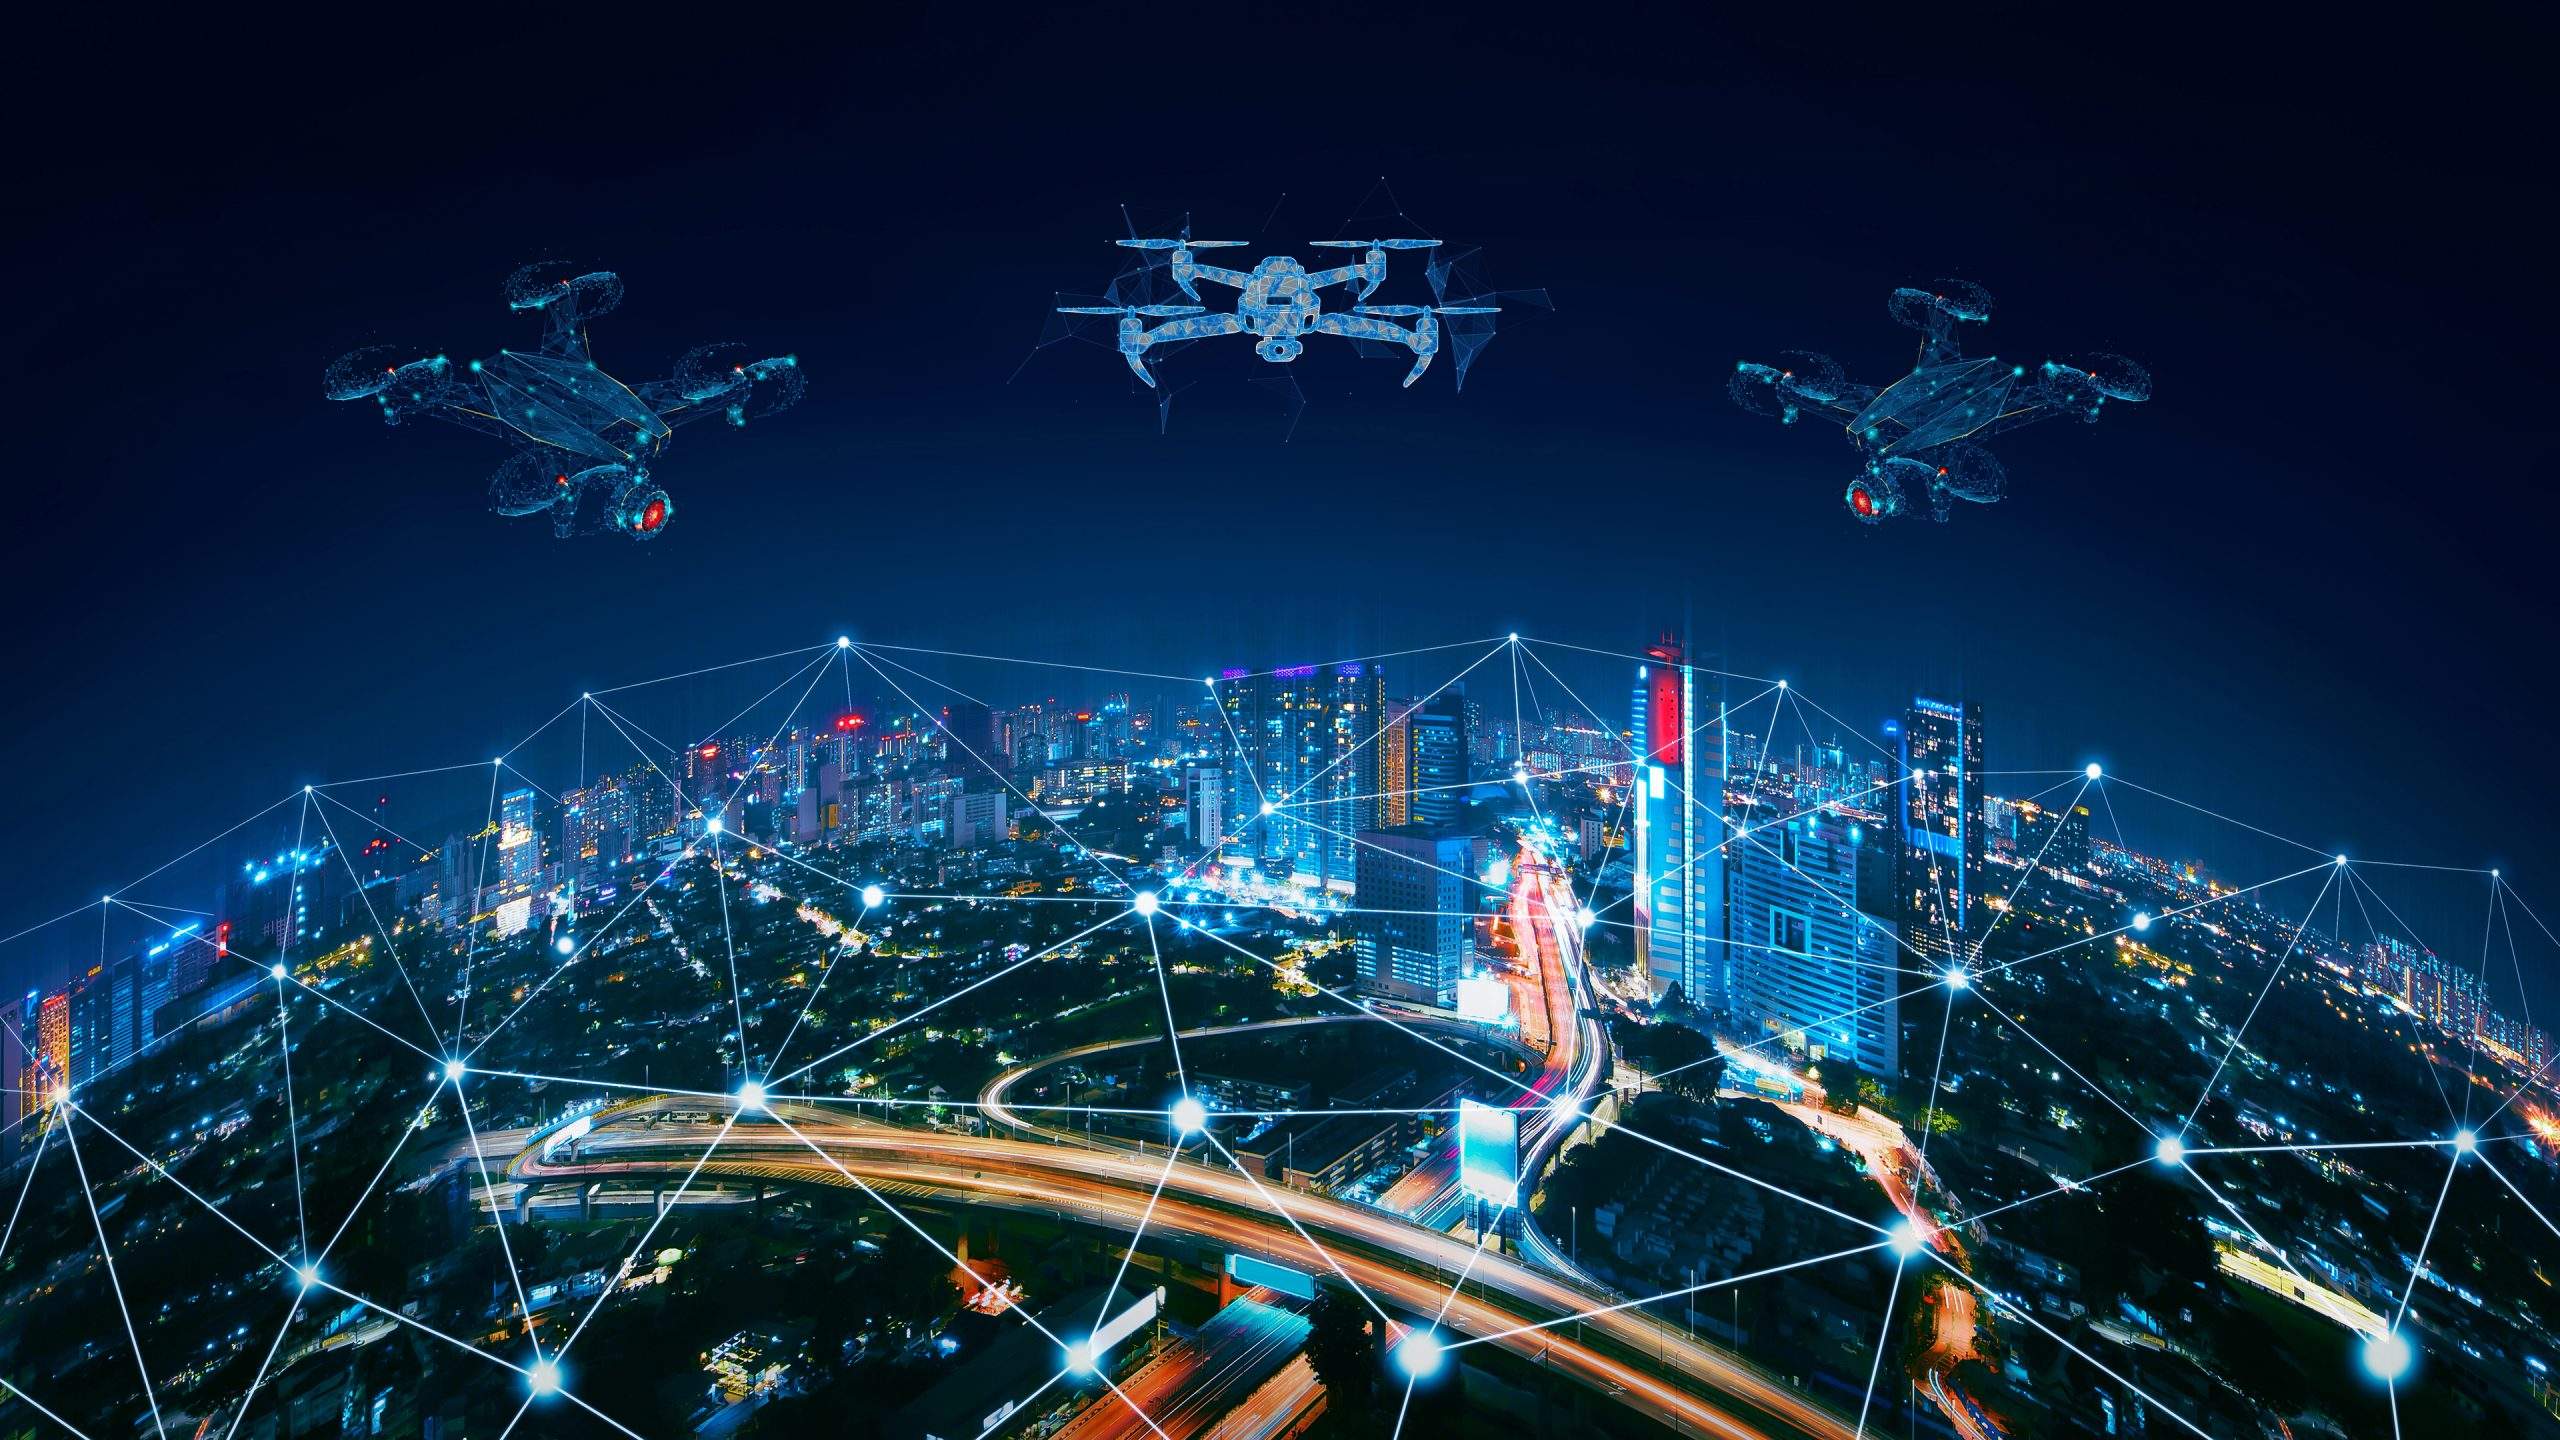 Birdseye view of a city lit up at night with UAVs hovering over connecting wireless points